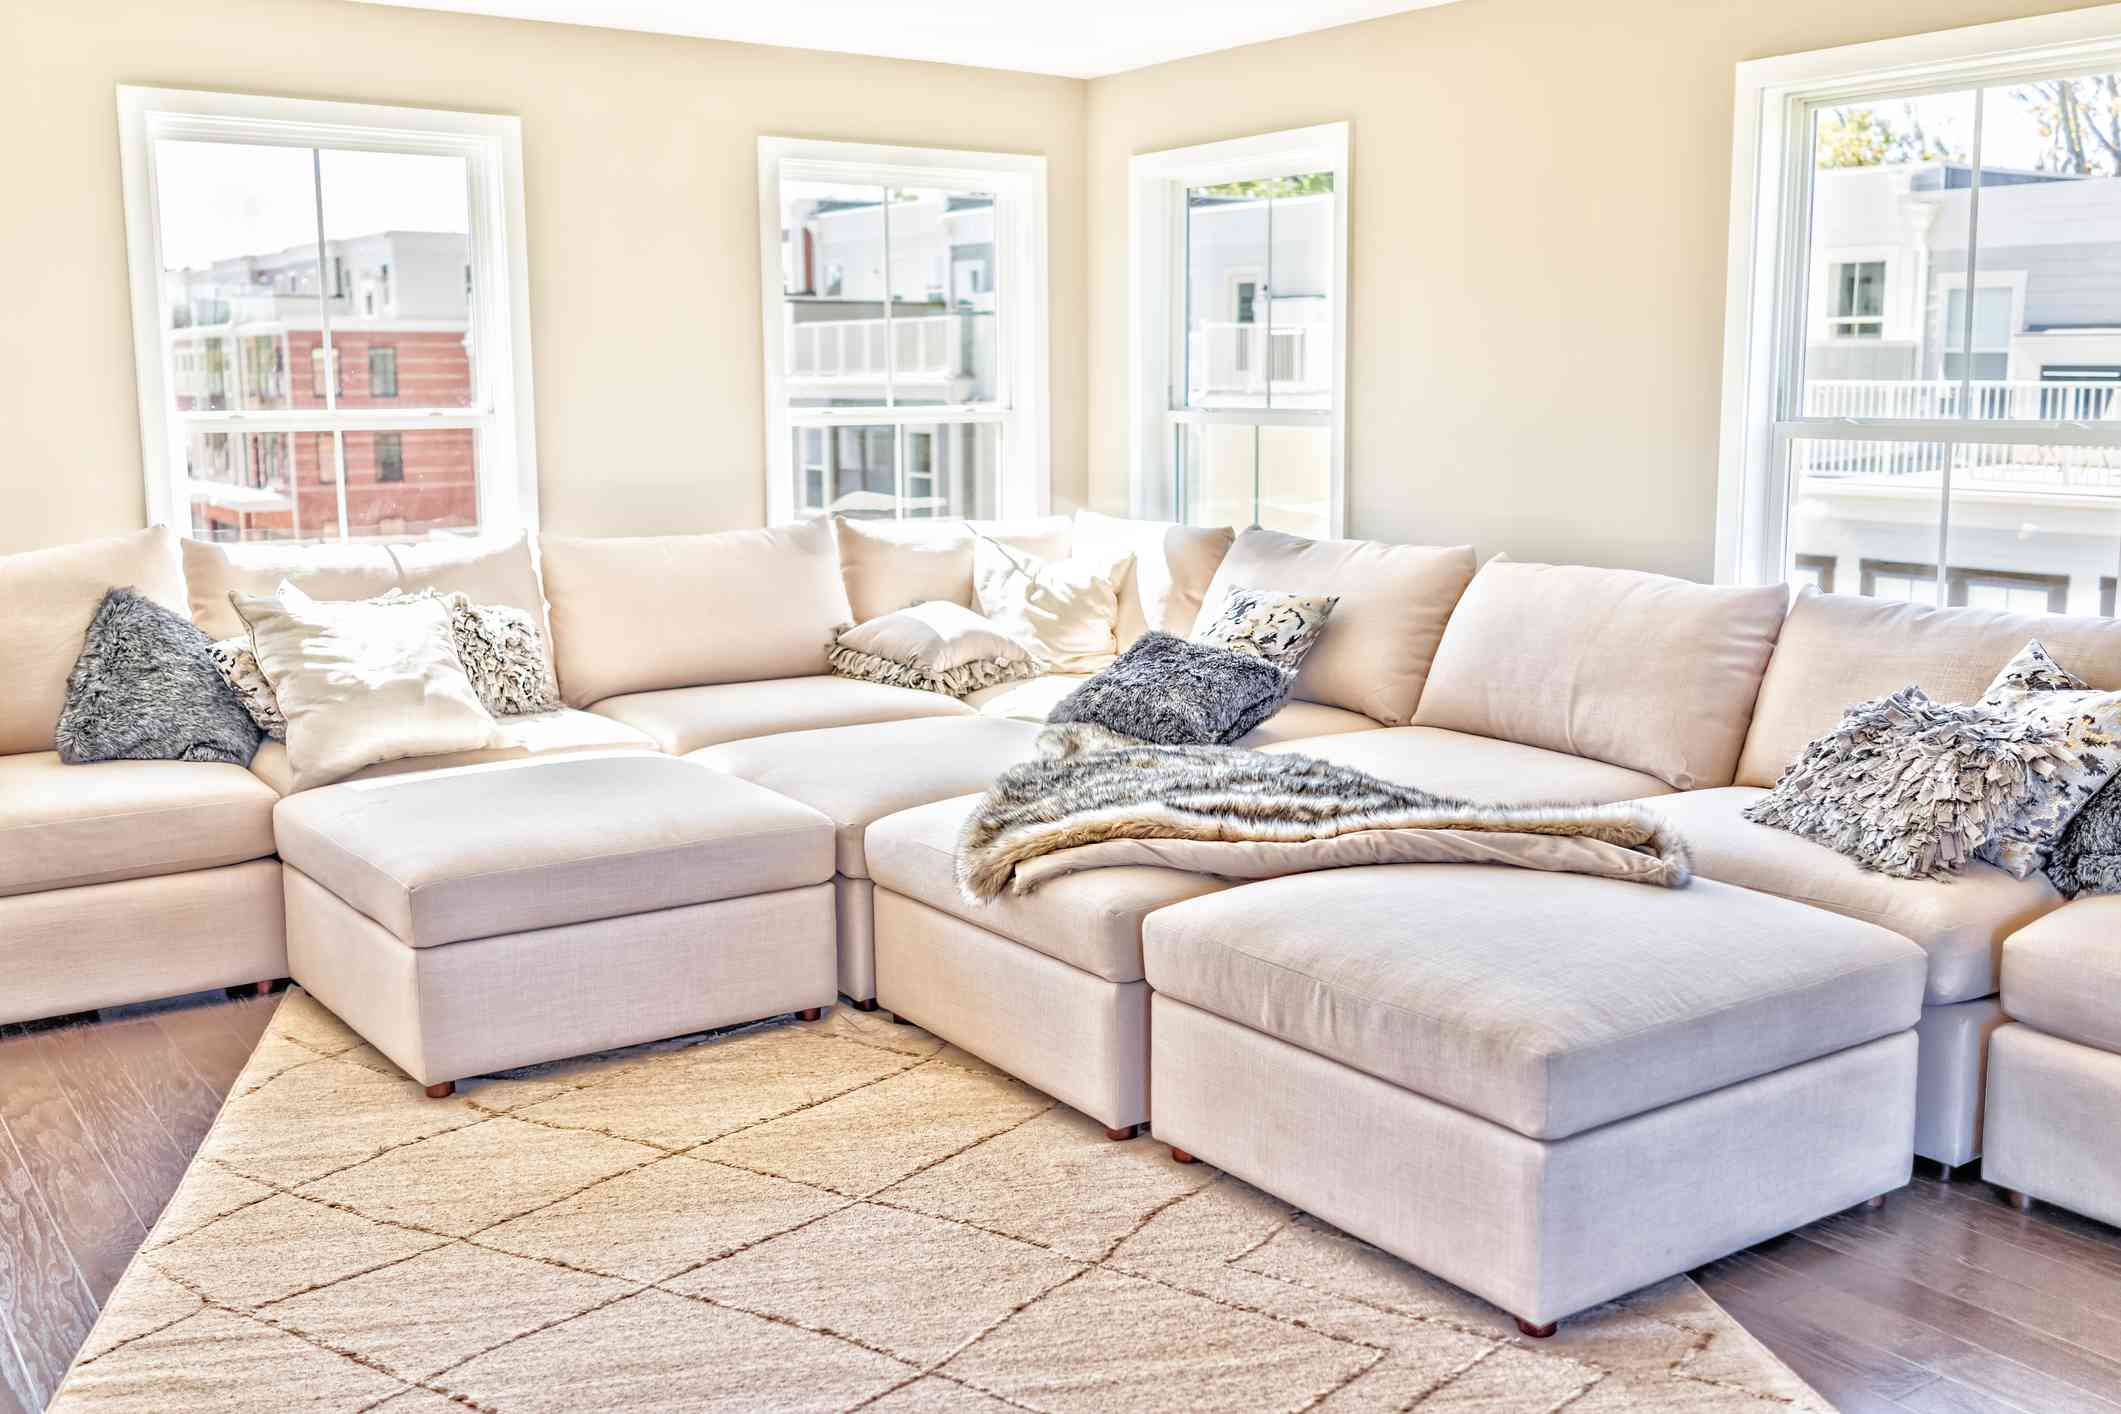 Tips to help you find quality rental furniture